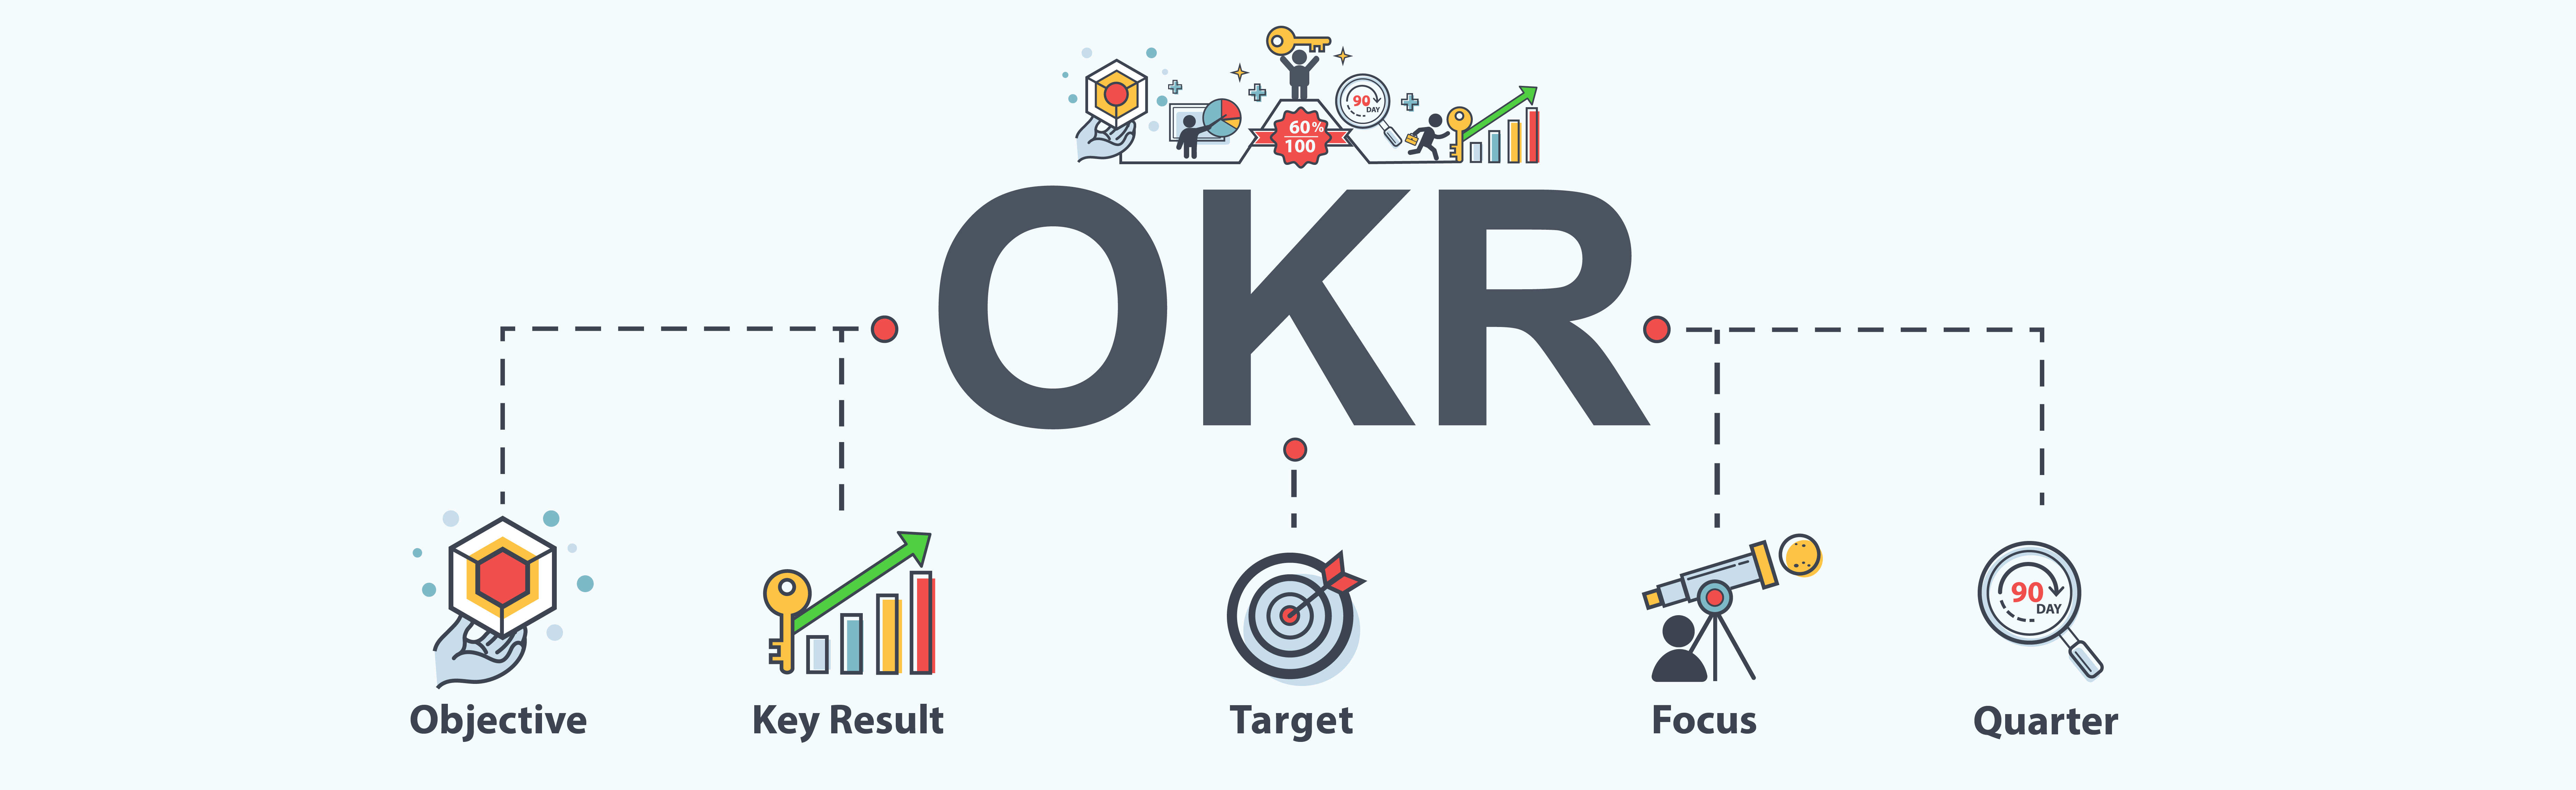 okr-performance-management